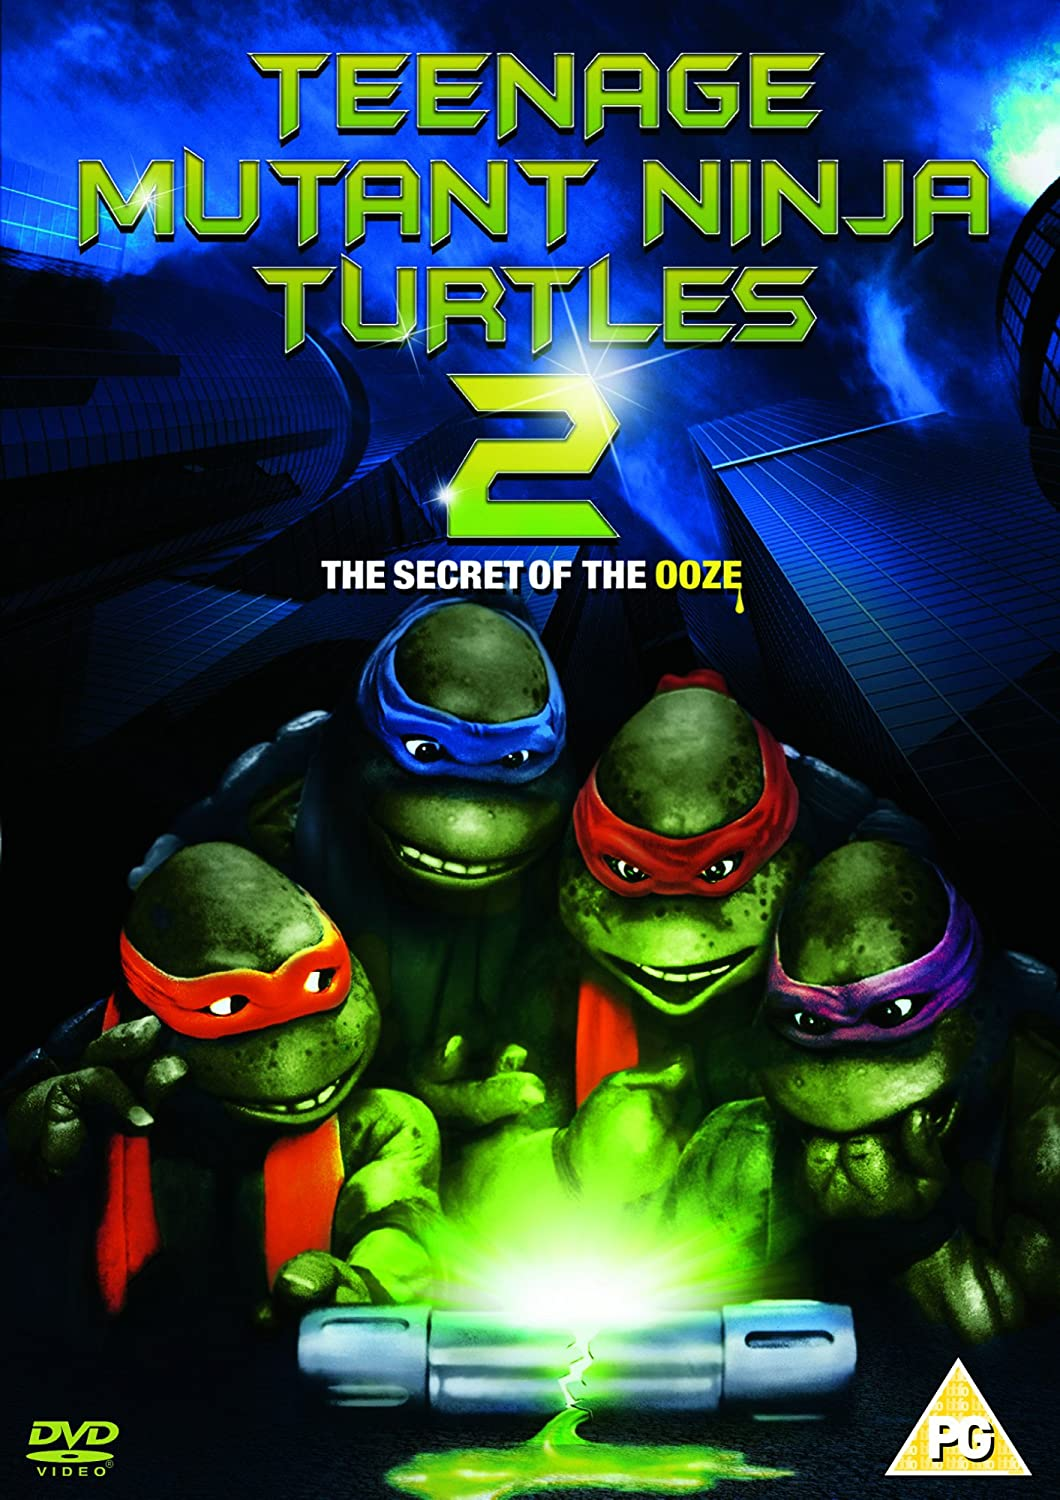 Teenage Mutant Ninja Turtles 2 - The Secret Of The Ooze ...